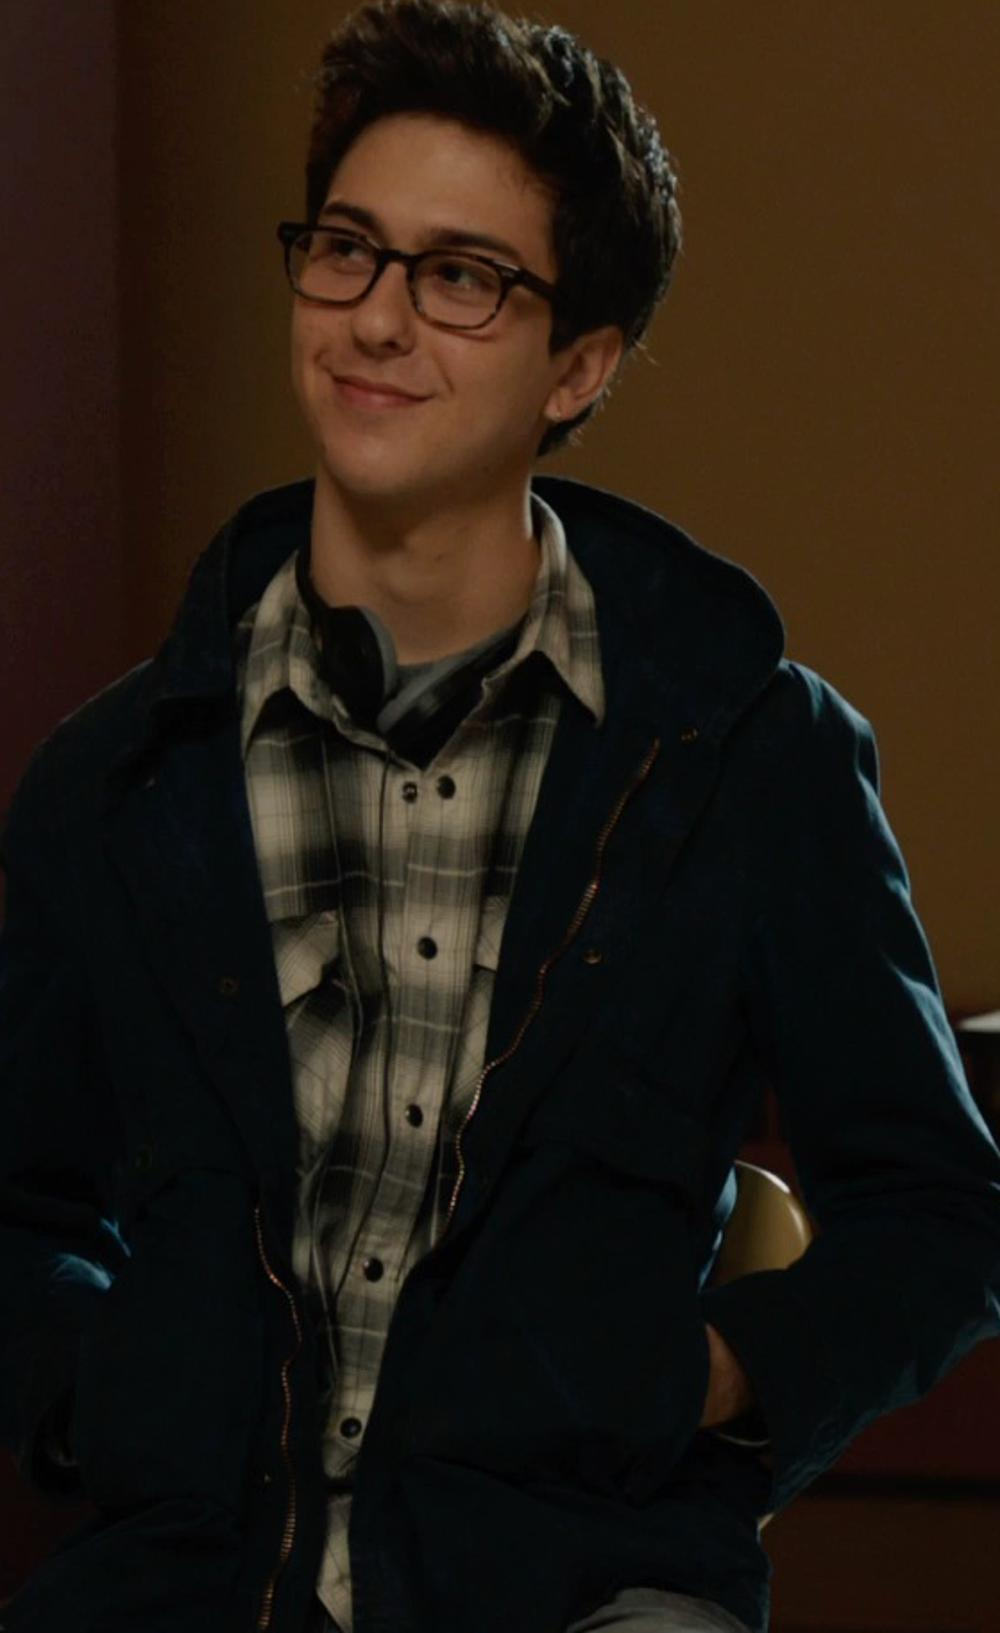 Nat Wolff with Pendleton Men's Classic Board Shirt, Black/Charcoal/Tan Plaid in The Fault In Our Stars